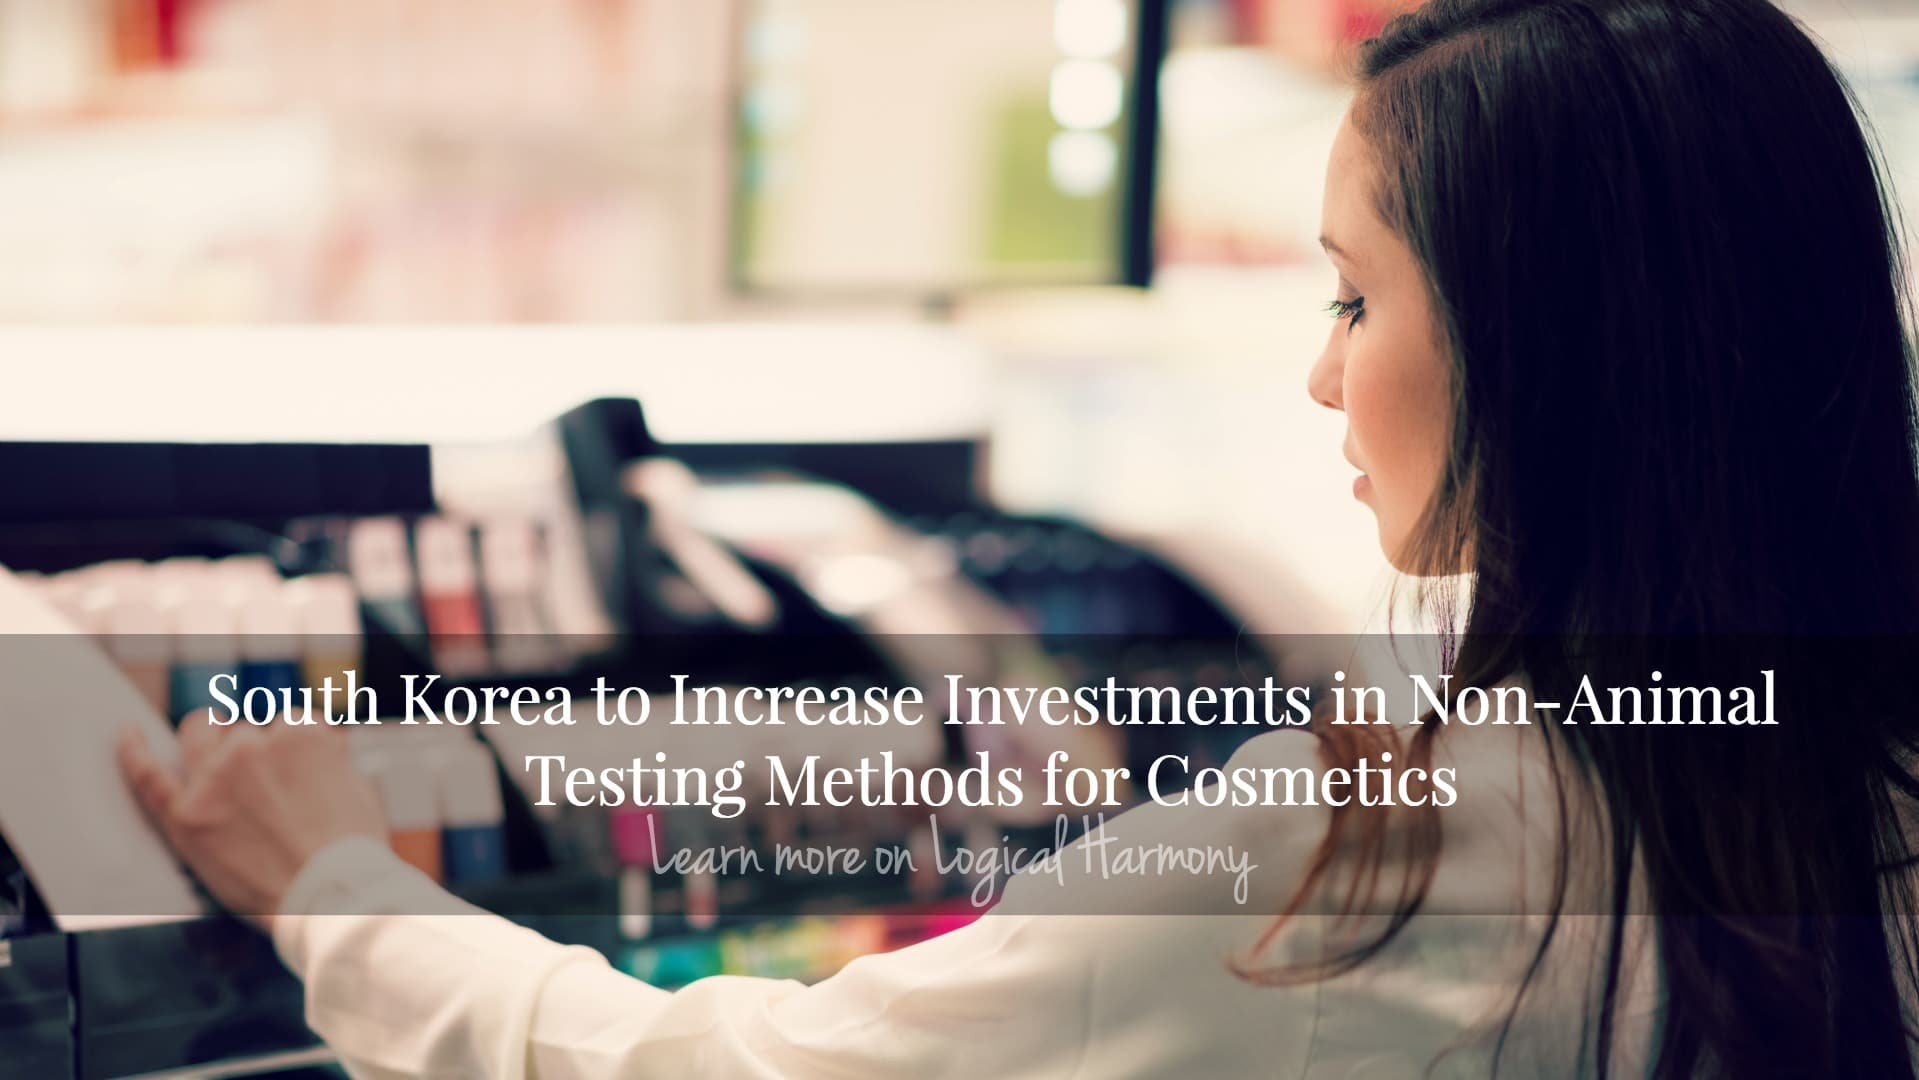 South Korea to Increase Investments in Non-Animal Testing Methods for Cosmetics